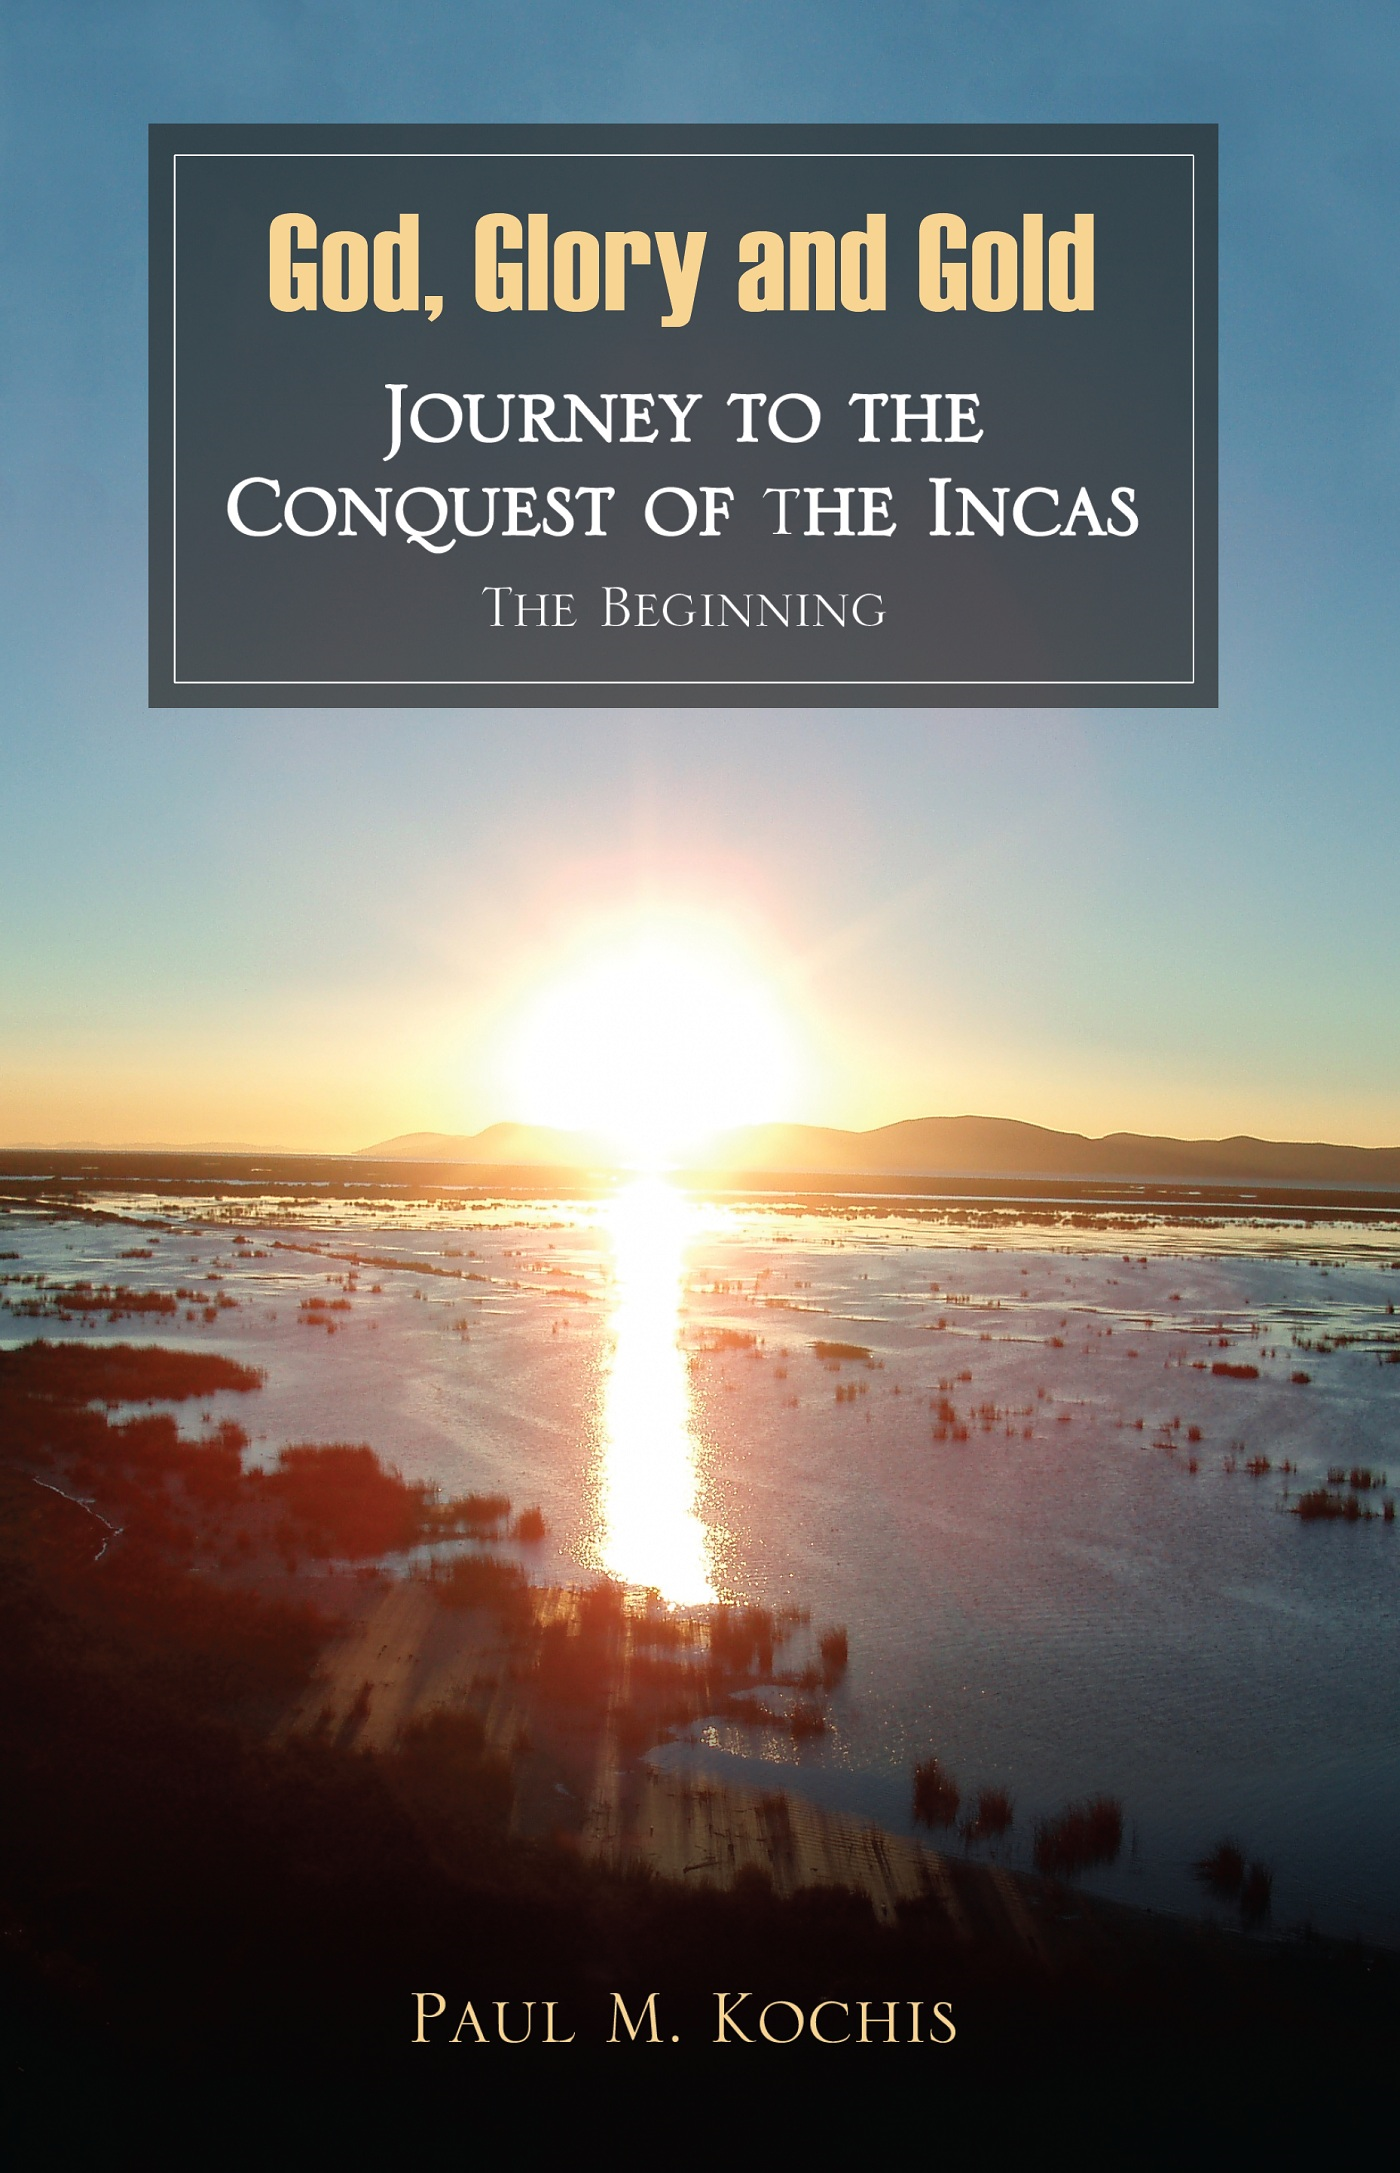 God, Glory and Gold: Journey to the Conquest of the Incas - The Beginning